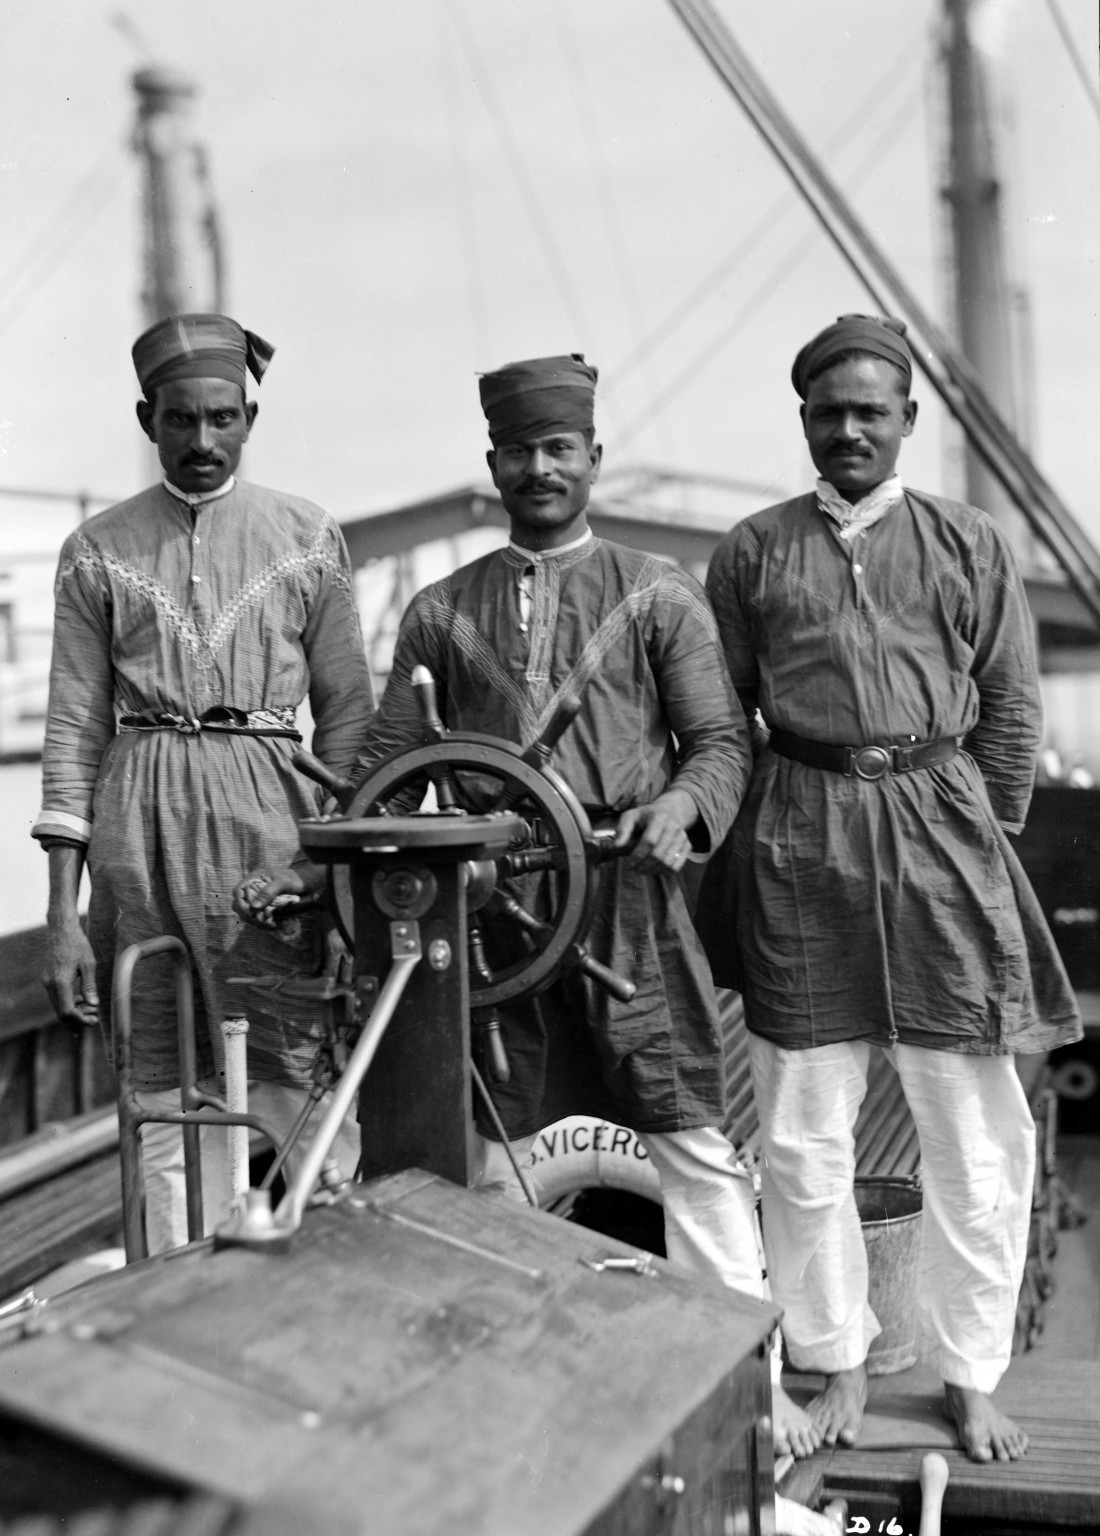 Three lascars behind the wheel of The Viceroy of India (1929). Such images were often posed.